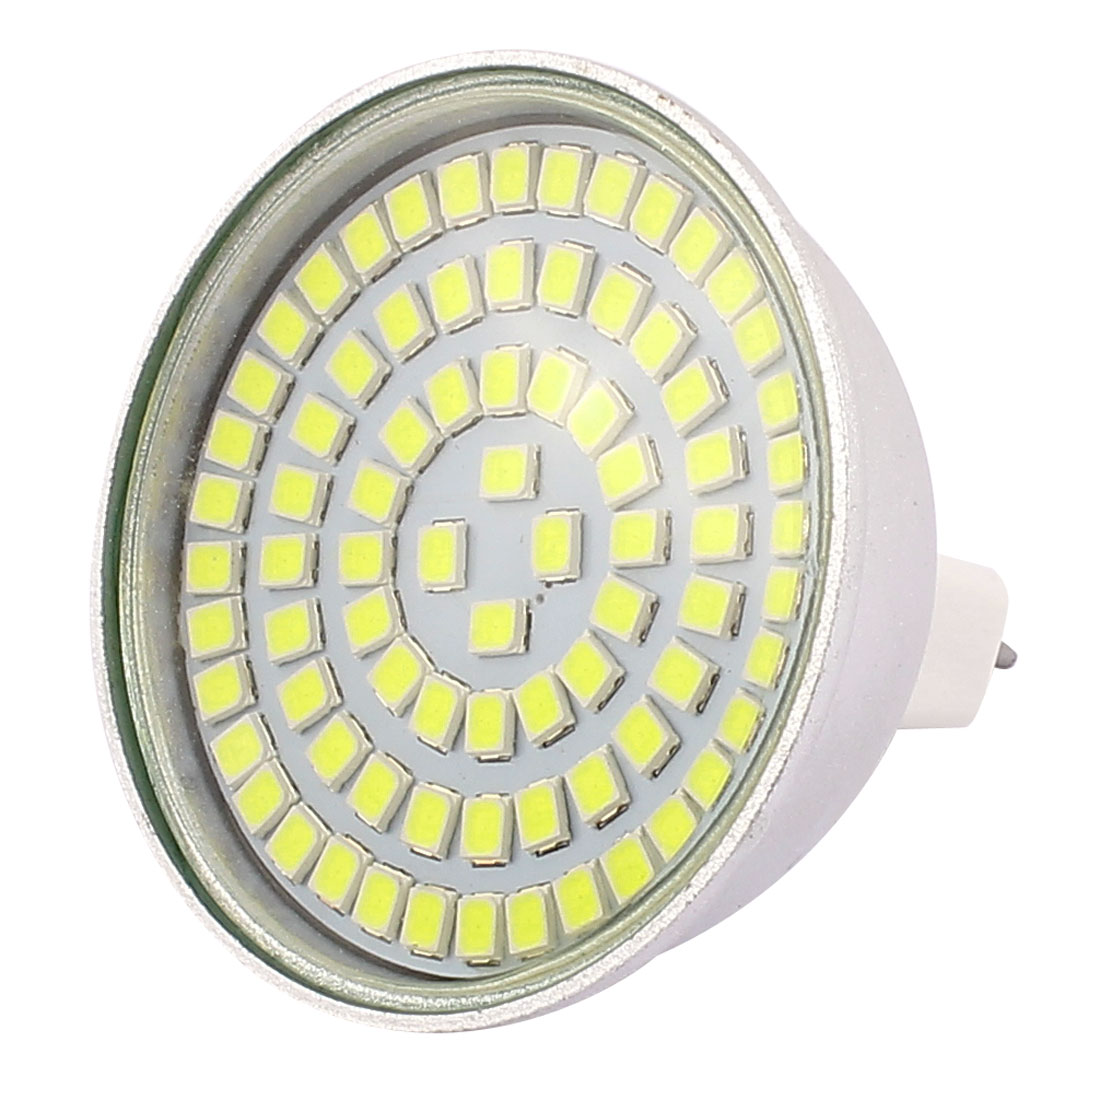 220V 8W MR16 2835 SMD 80 LEDs LED Bulb Light Spotlight Lamp Energy Saving White